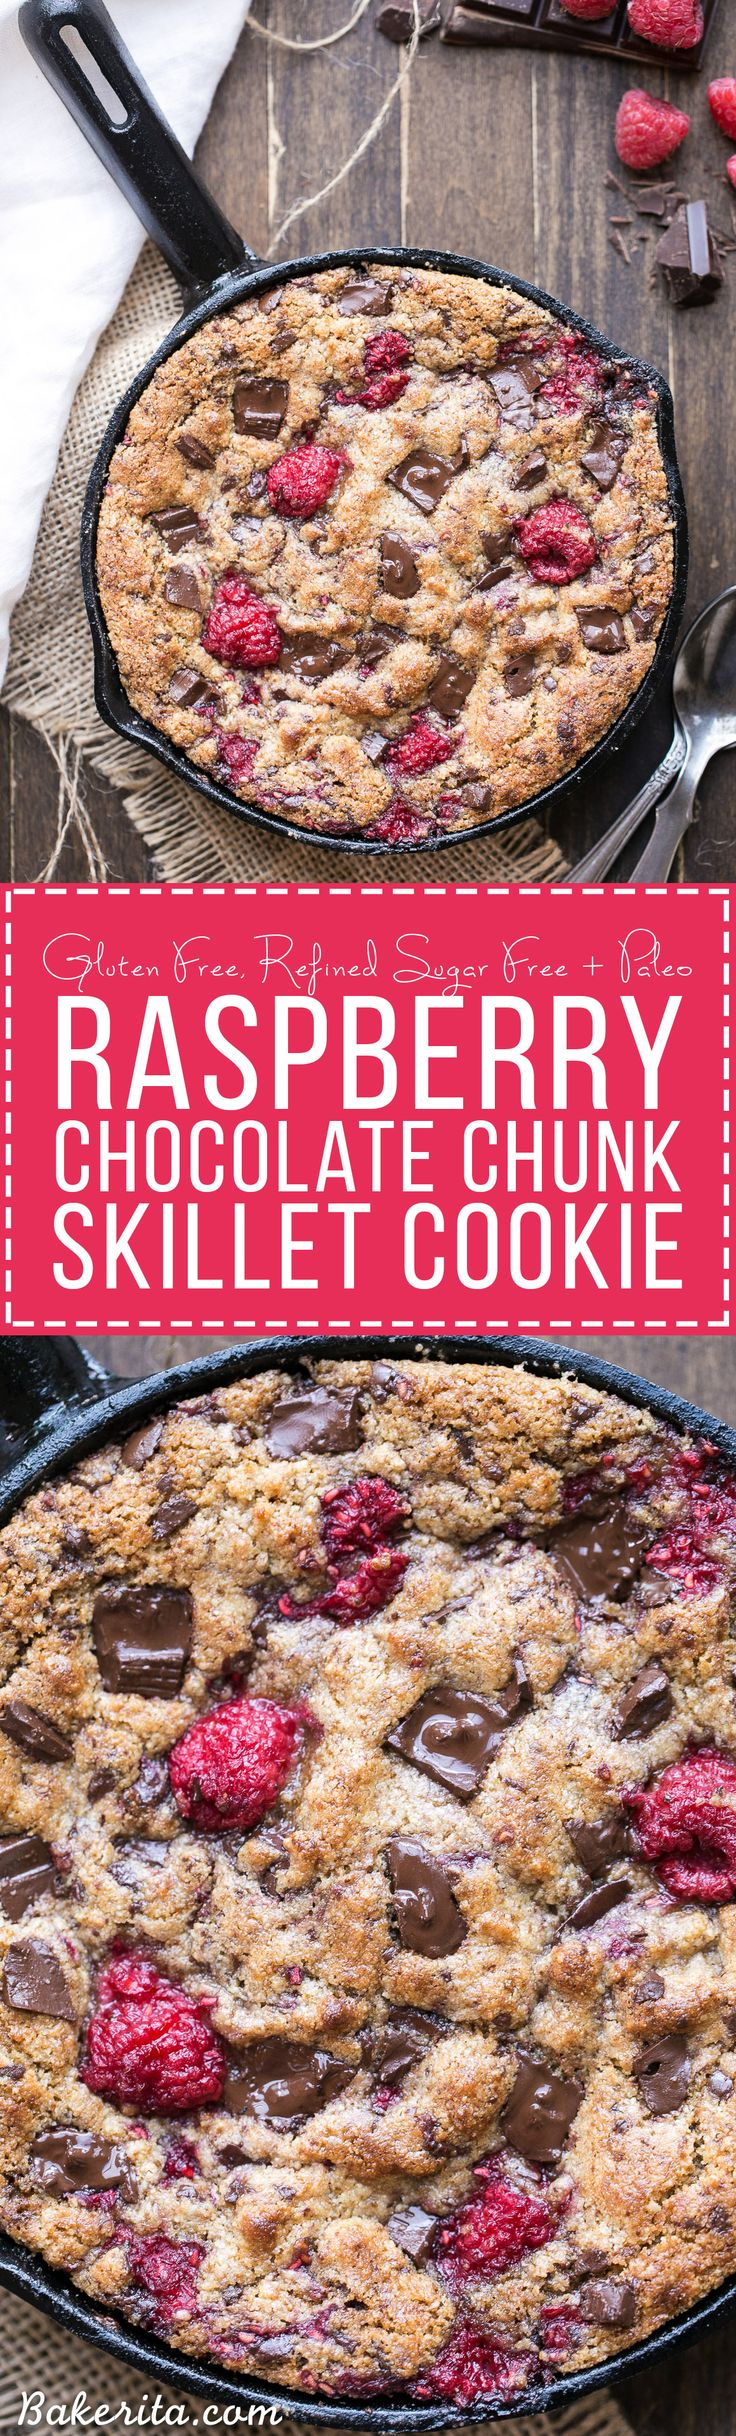 This Raspberry Chocolate Chunk Skillet Cookie is an easy, one bowl recipe loaded with fresh raspberries and dark chocolate chunks. This gooey skillet cookie is gluten-free, Paleo, and refined sugar free.